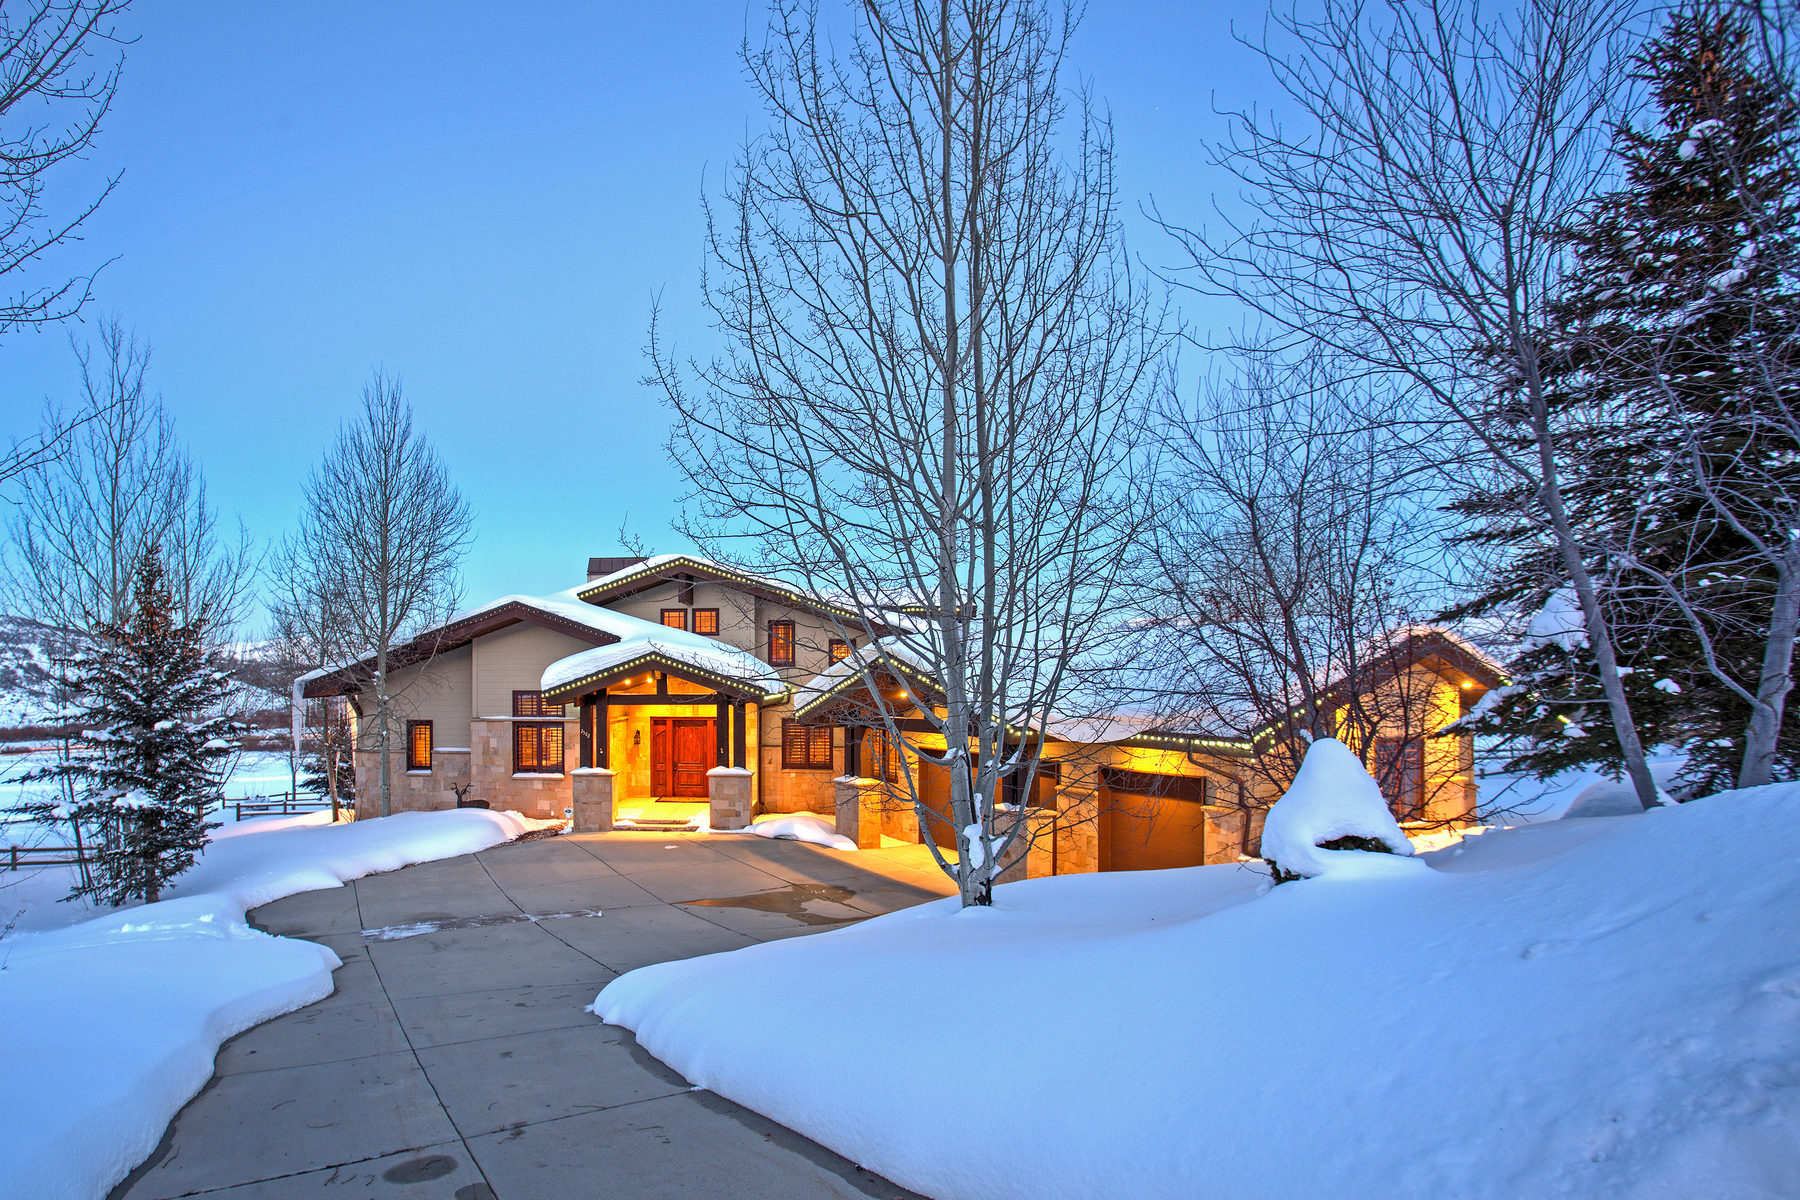 Single Family Home for Sale at Stunning Entertainer's Residence in the Heart of Park City 2582 Aspen Springs Dr Park City, Utah, 84060 United States